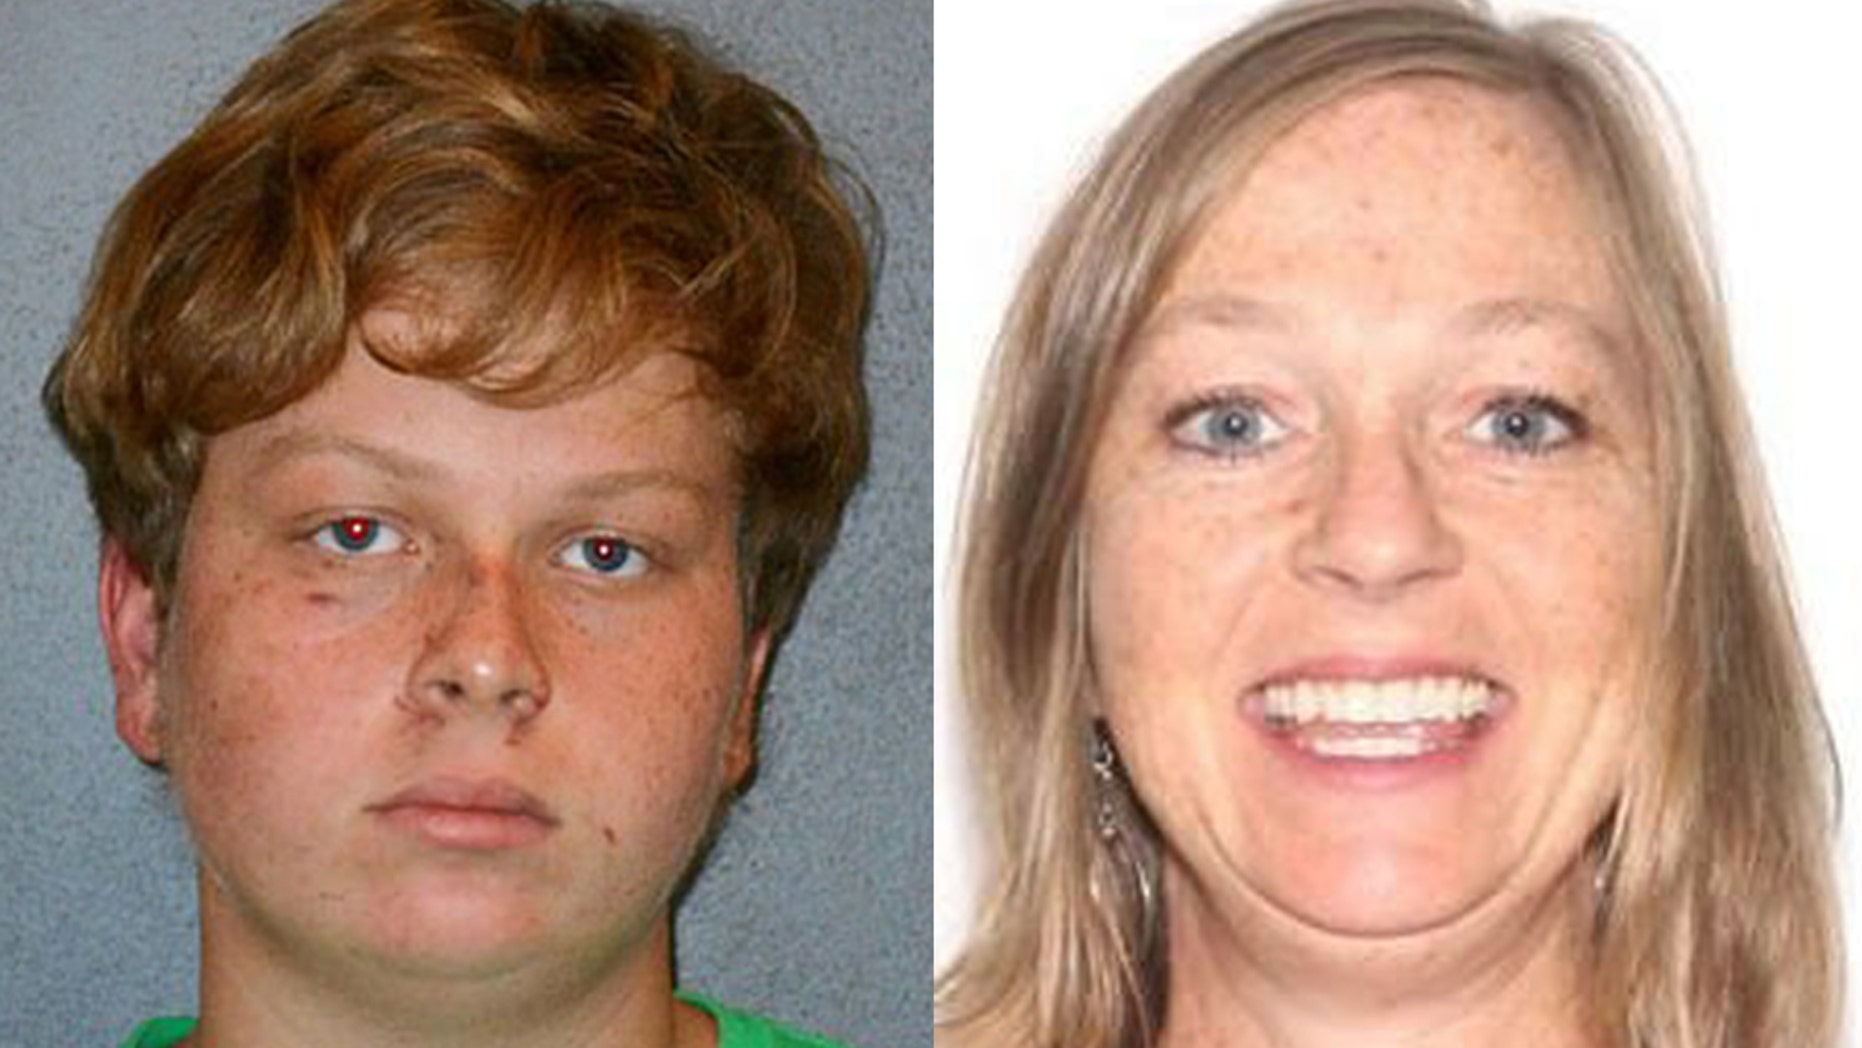 Gregory Ramos 15 has confessed to killing his 46-year-old mother Gail Cleavenger after they argued about a poor grade late Thursday at their home in DeBary Florida